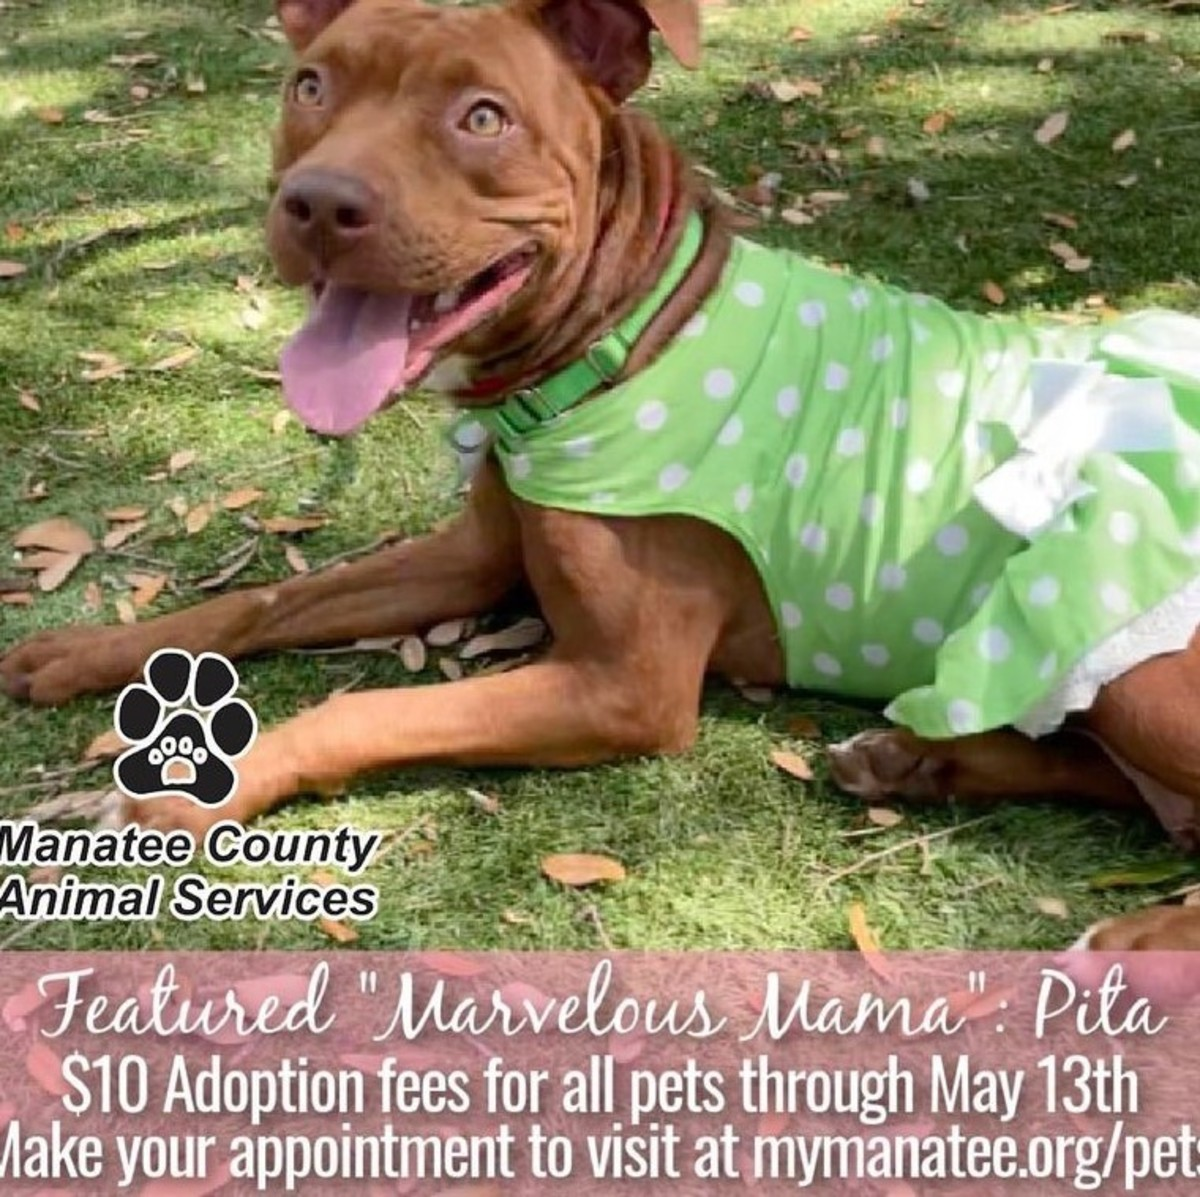 Volunteers and creative photo shoots this month to showcase bully breeds at the shelter.